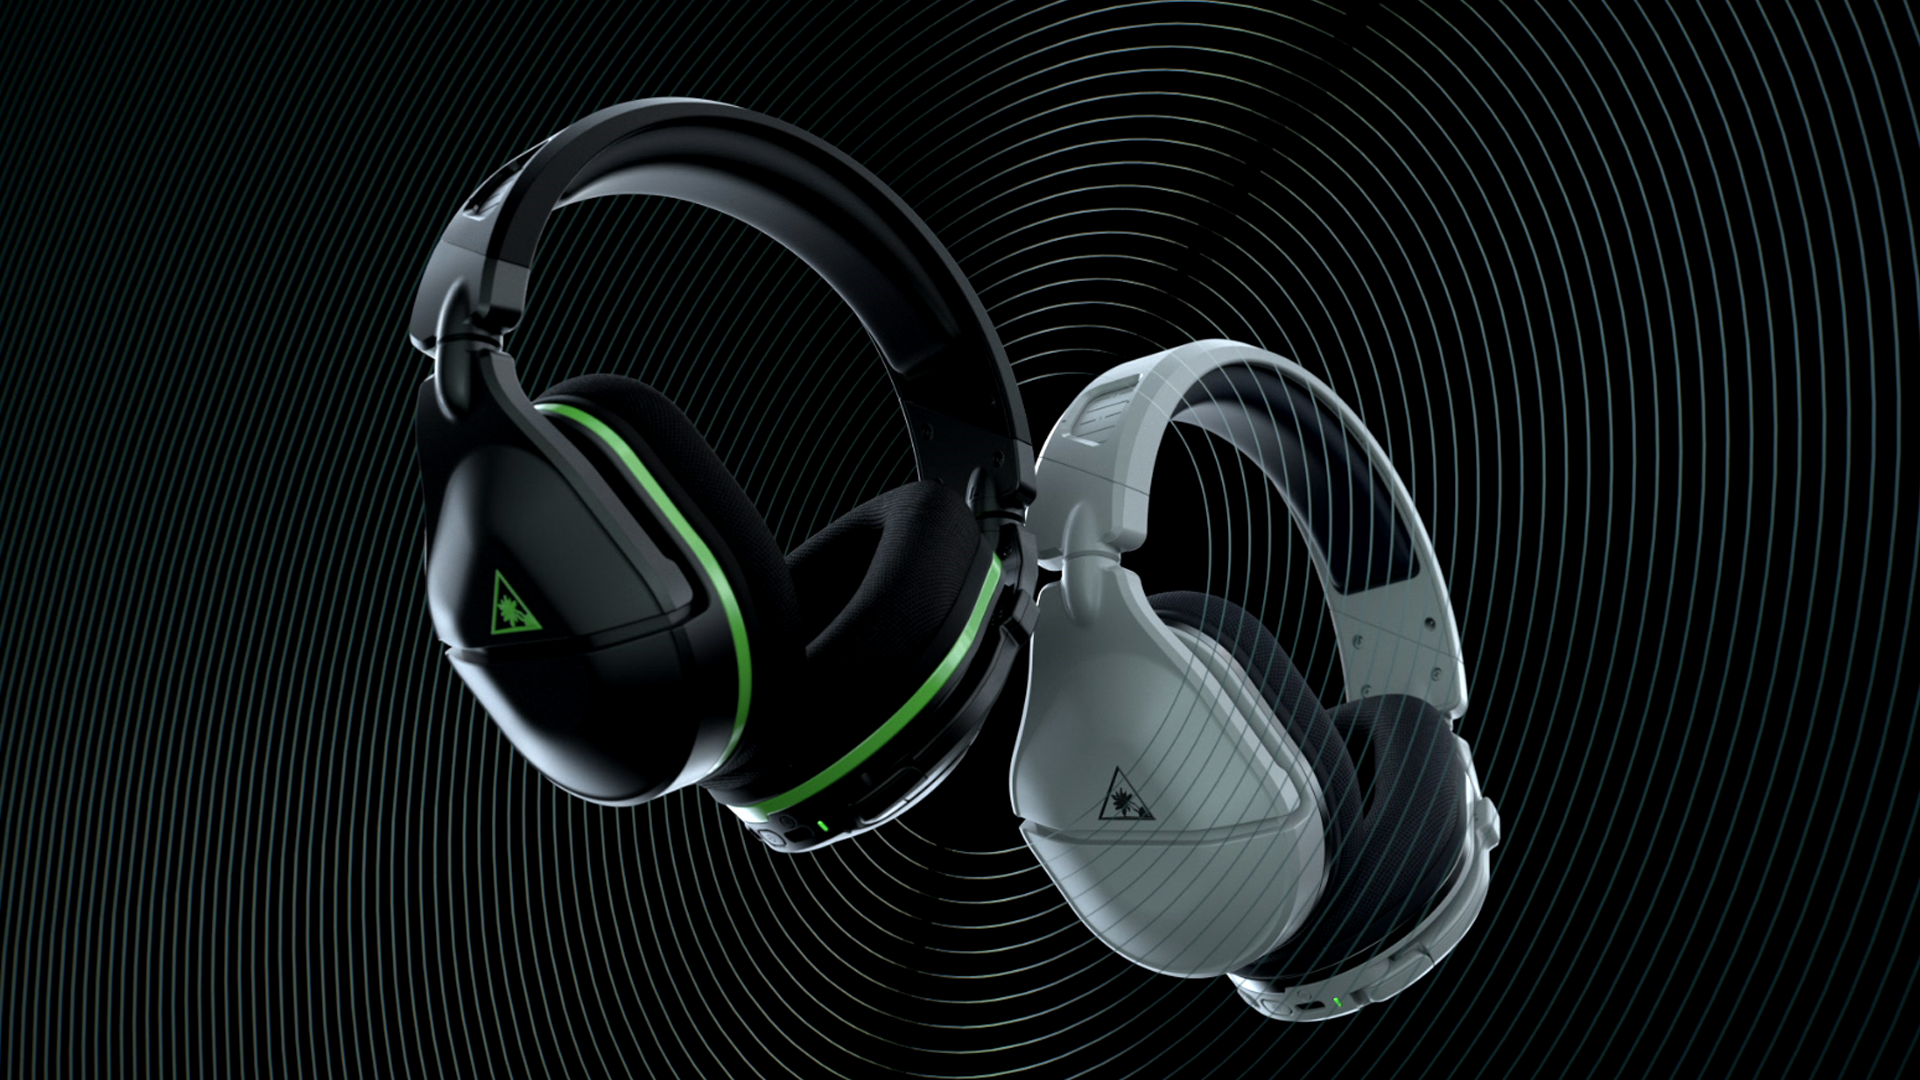 What Turtle Beach Headsets Will Work With Xbox Series X|S And PlayStation 5?